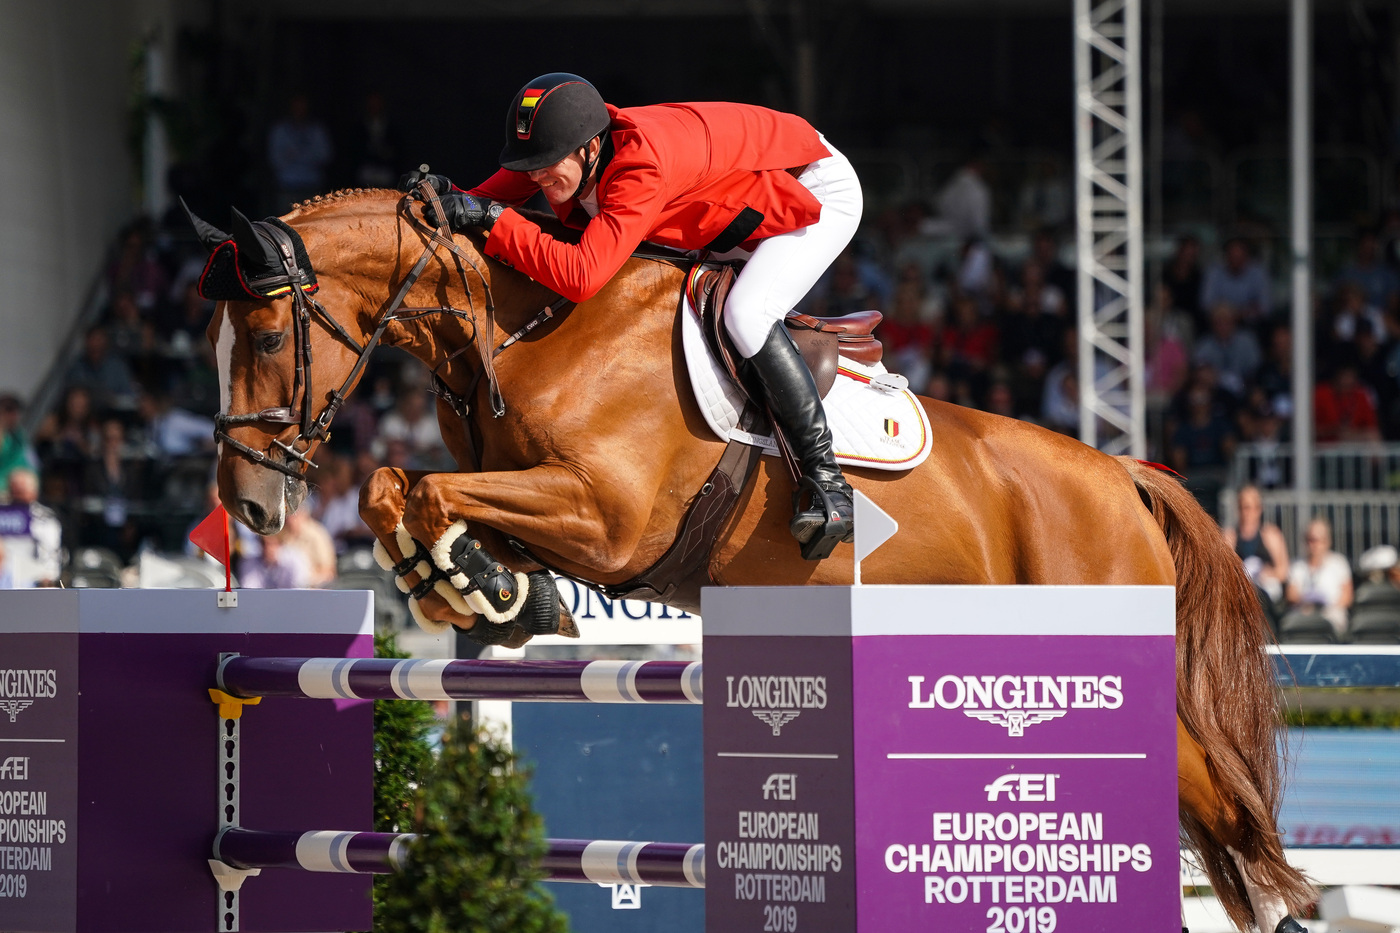 Longines Show Jumping Event: One week of captivating competitions and exceptional performances at the Longines FEI European Championships 2019 2